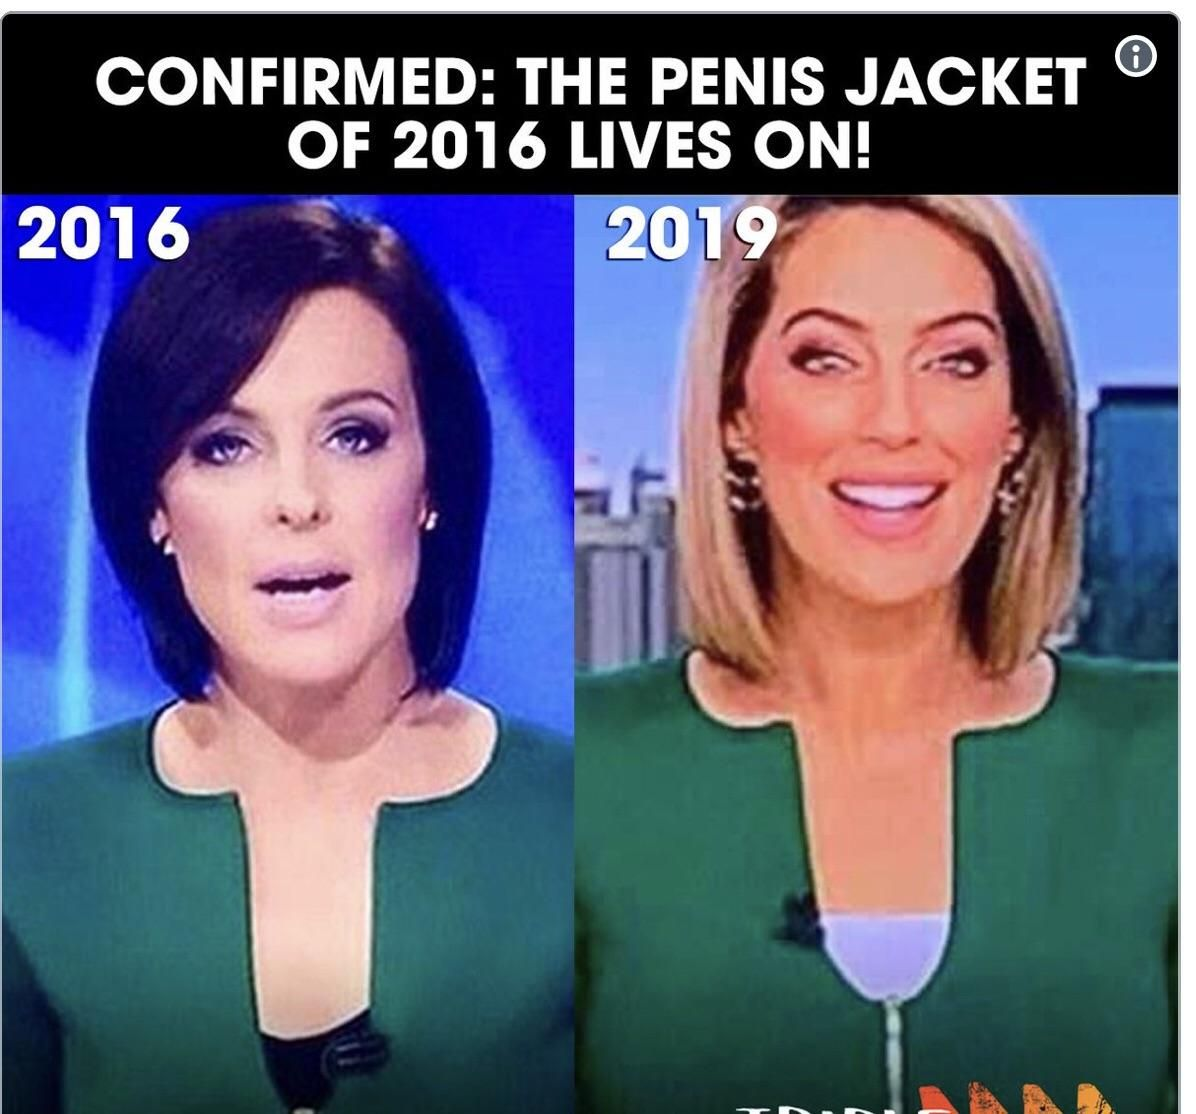 New fashion craze.... Penis jackets!